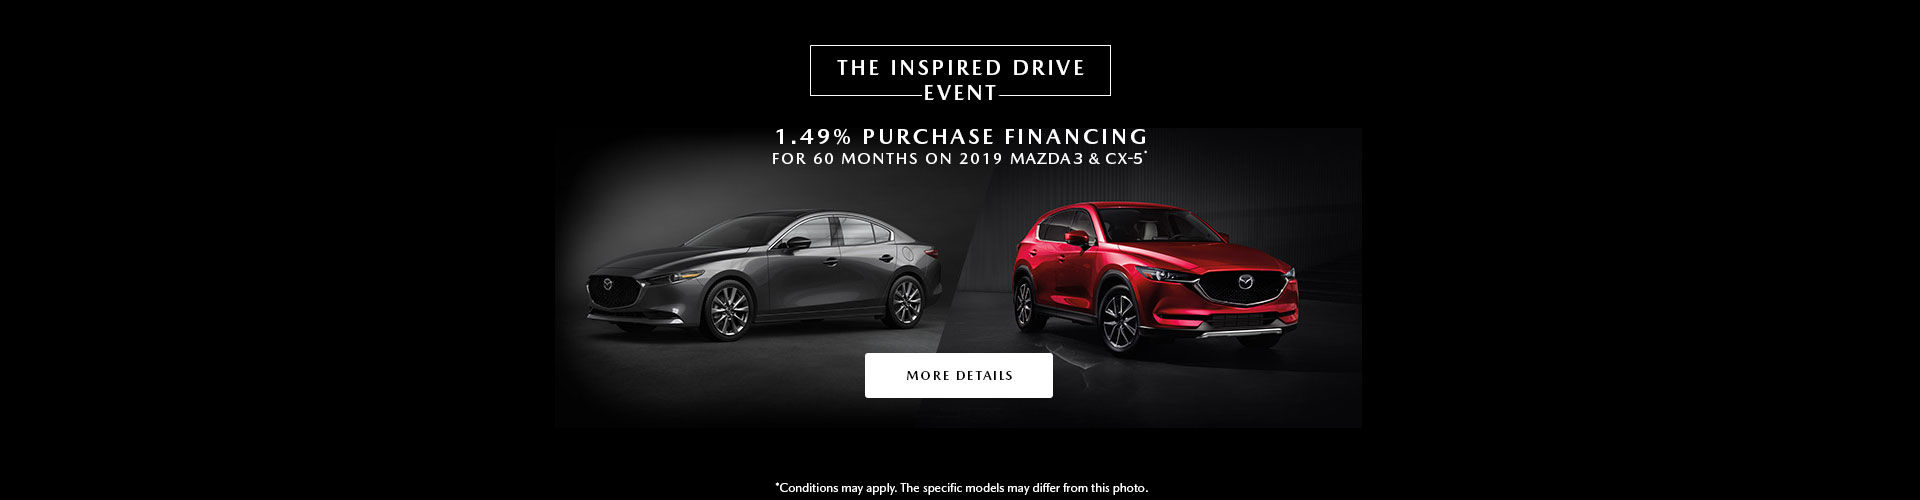 Inspired Drive Event